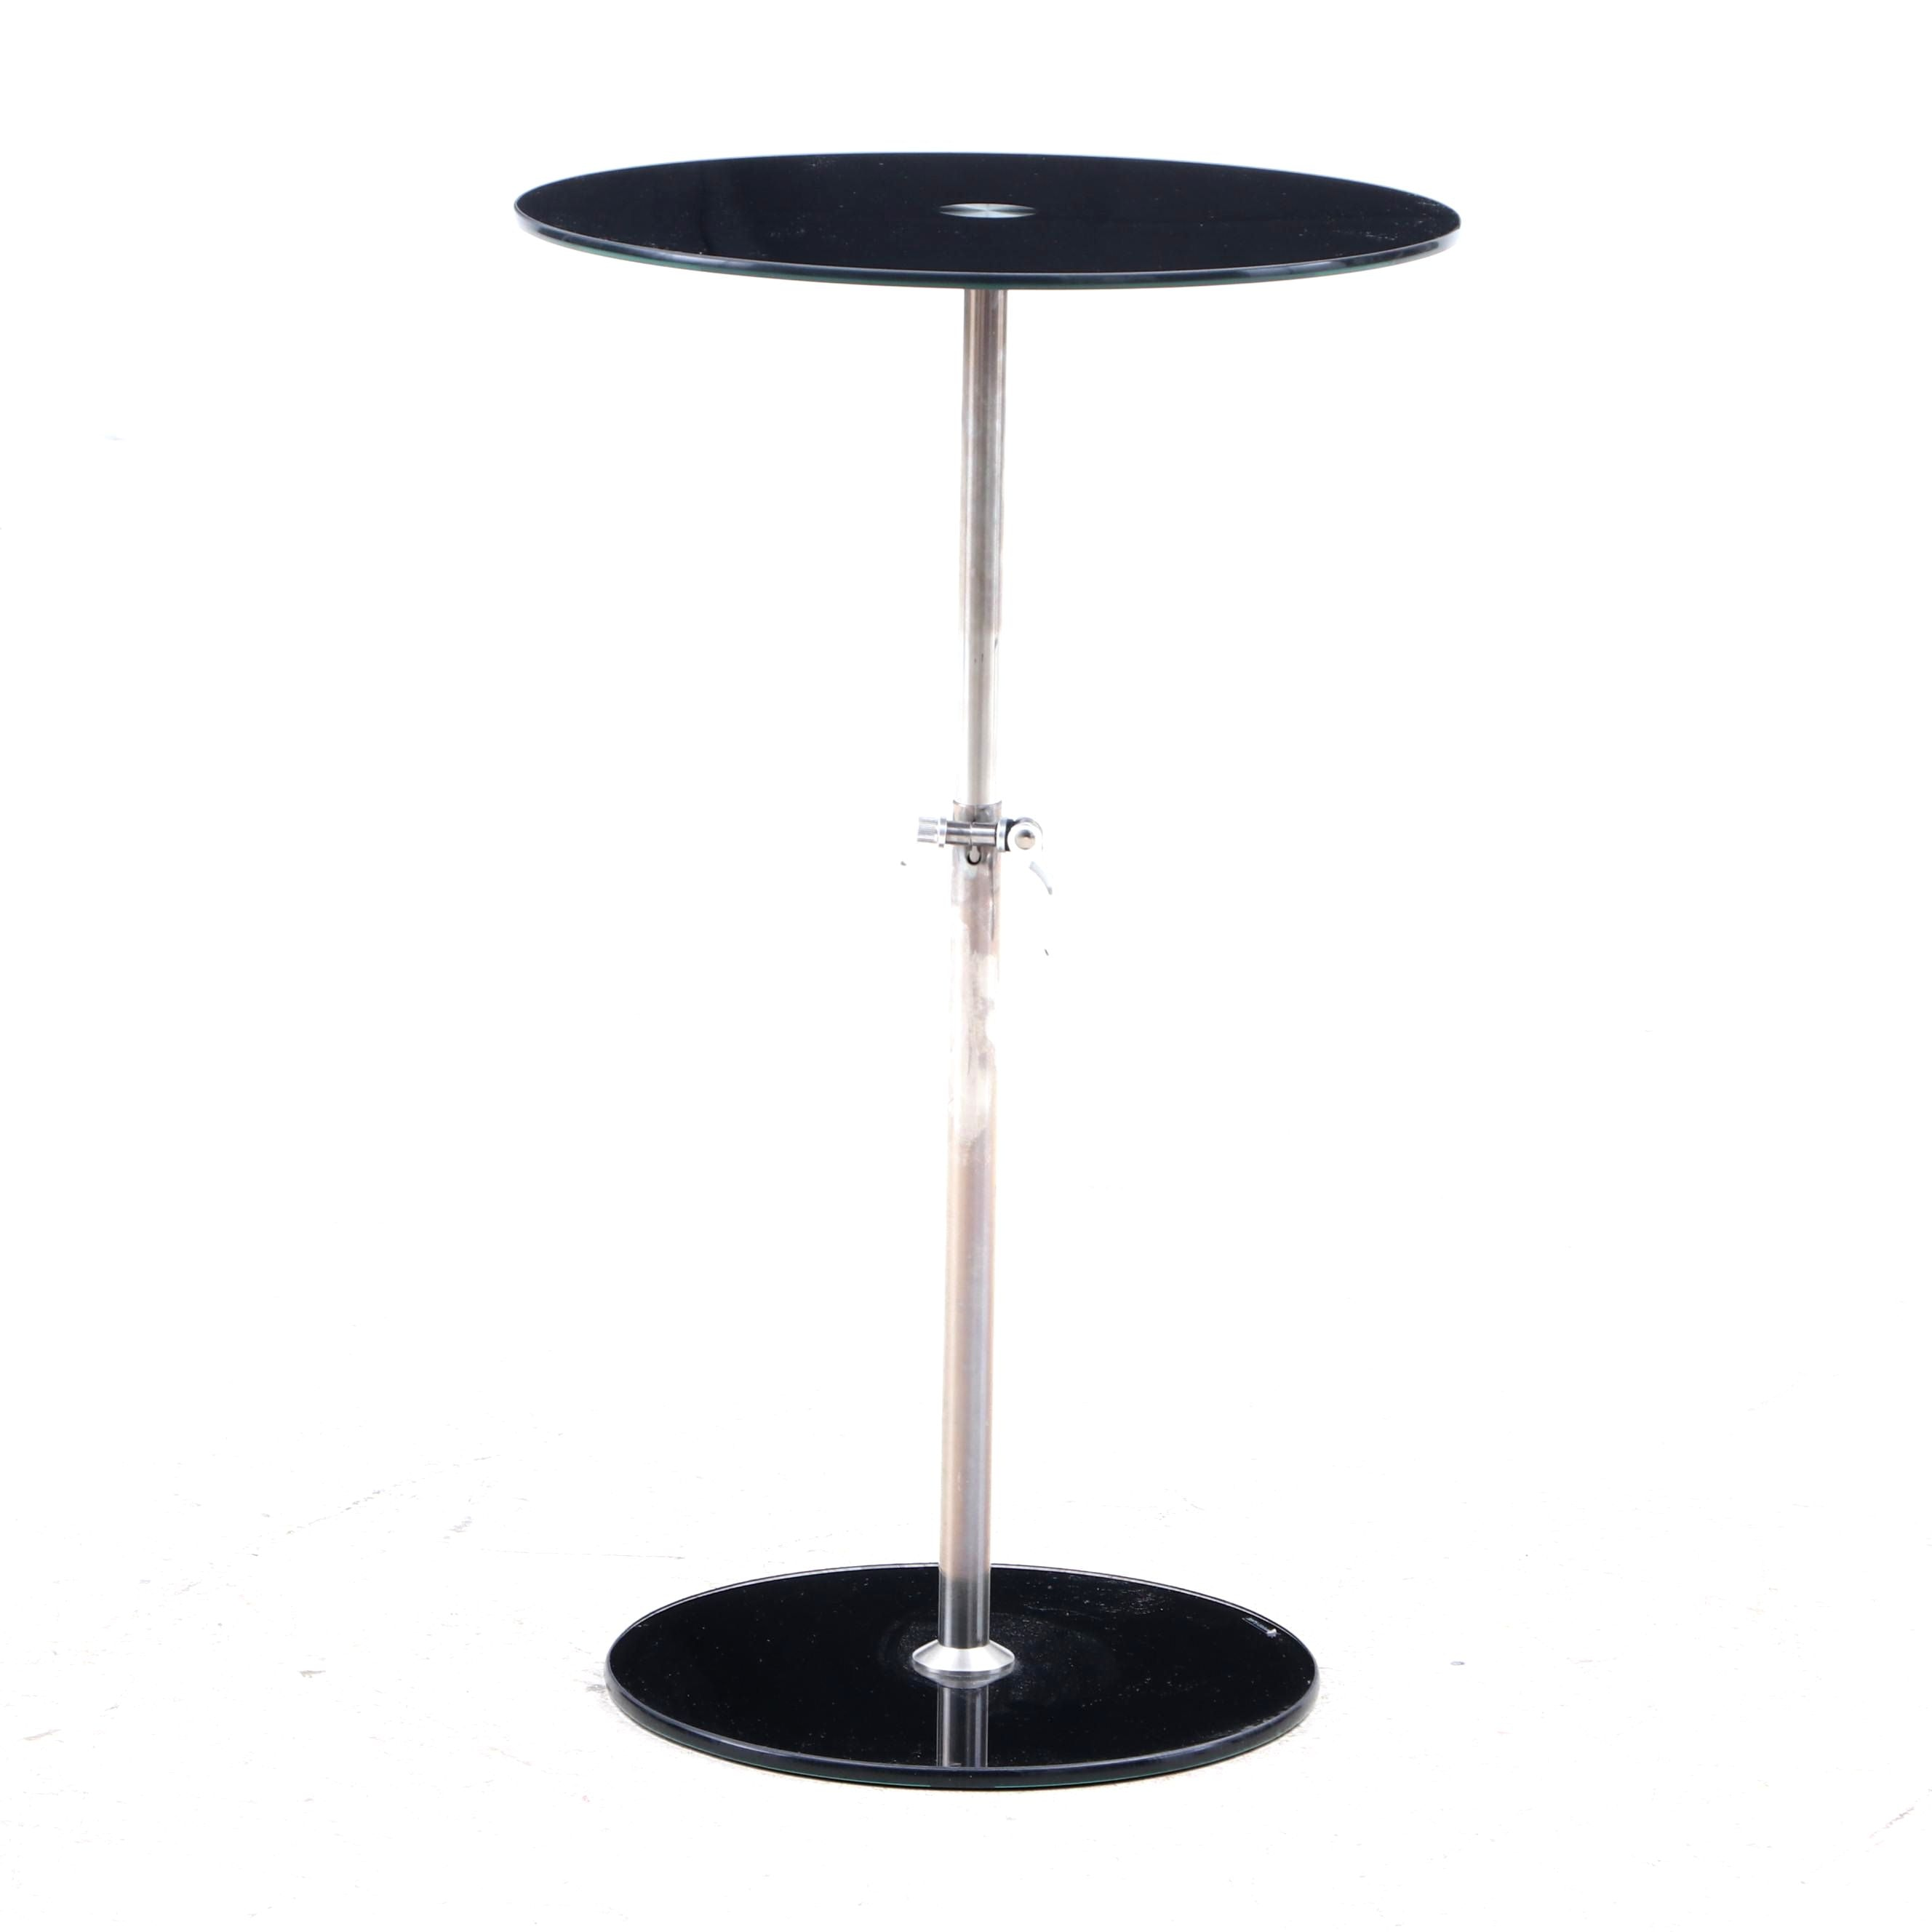 Modernist Tempered Glass and Chrome Finish Adjustable End Table, Contemporary